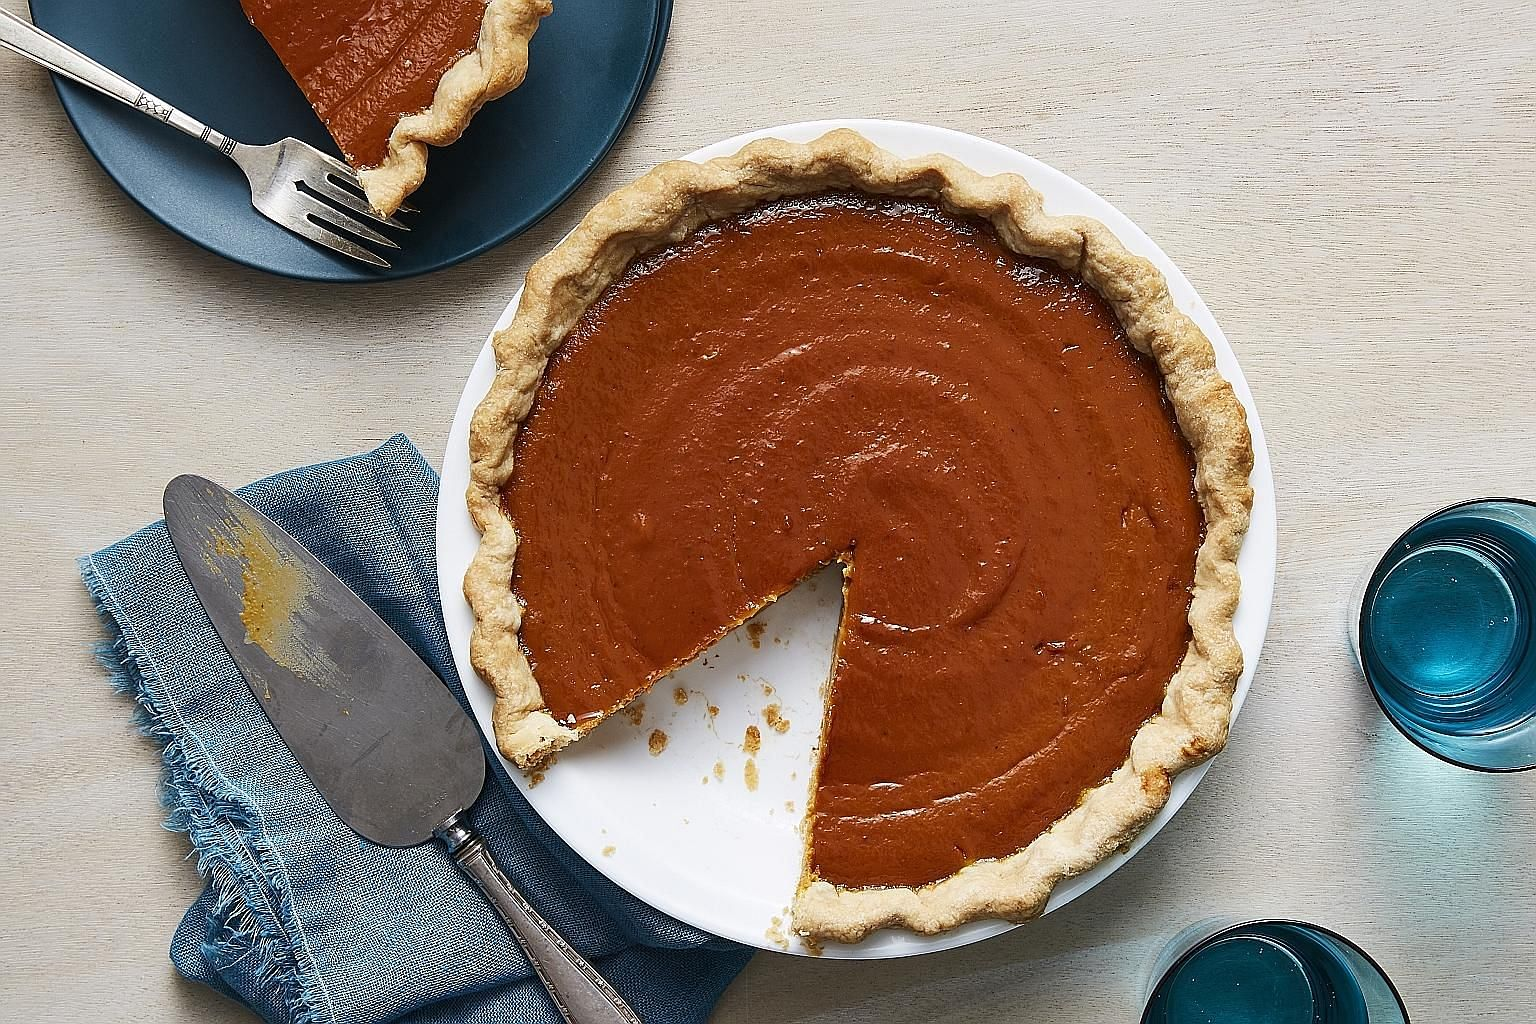 This pumpkin pie has the perfect balance of ginger and spice.